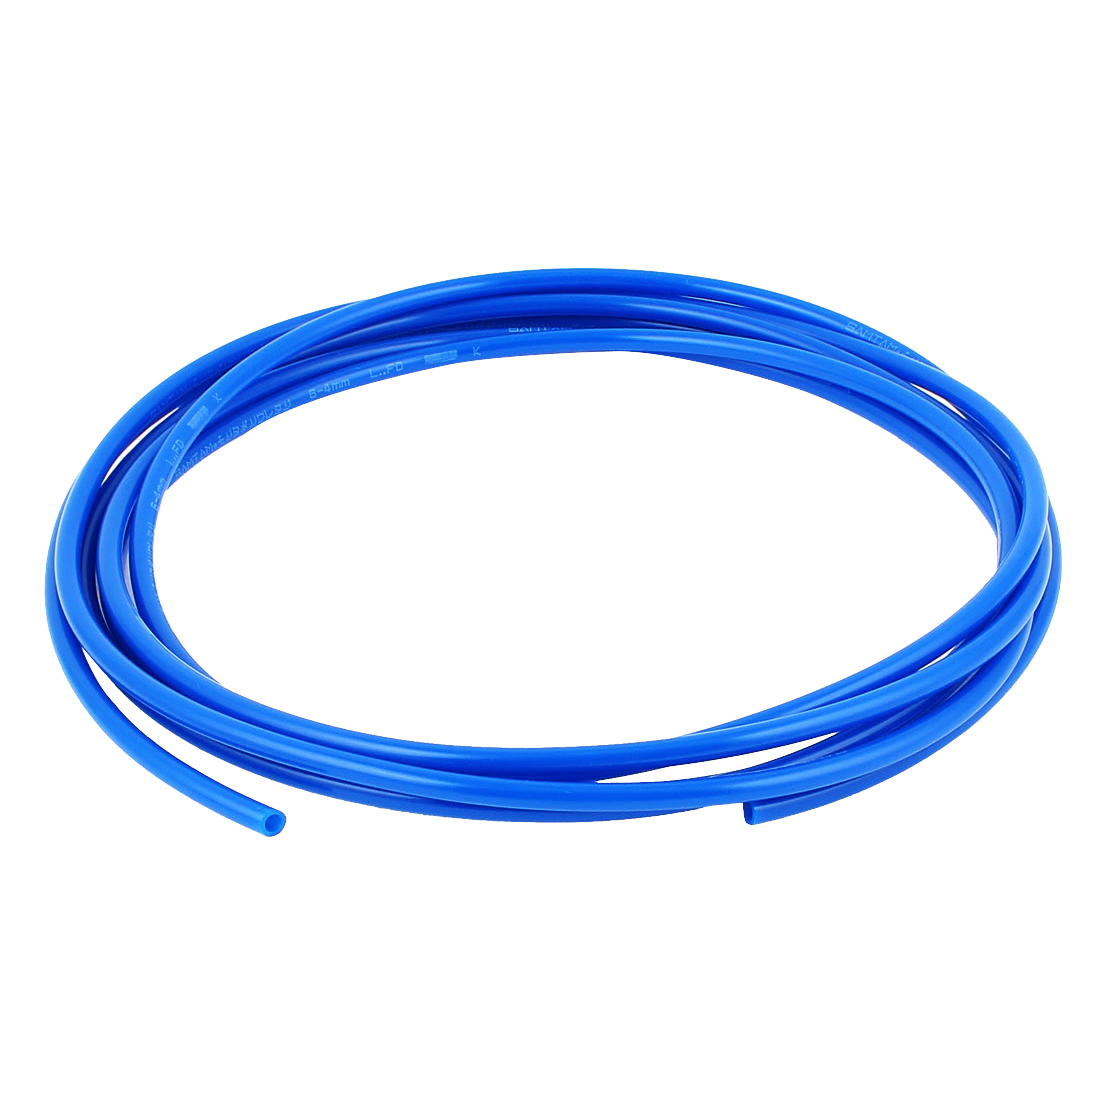 6mm x 4mm Fleaxible PU Tube Pneumatic Hose Blue 4M Long